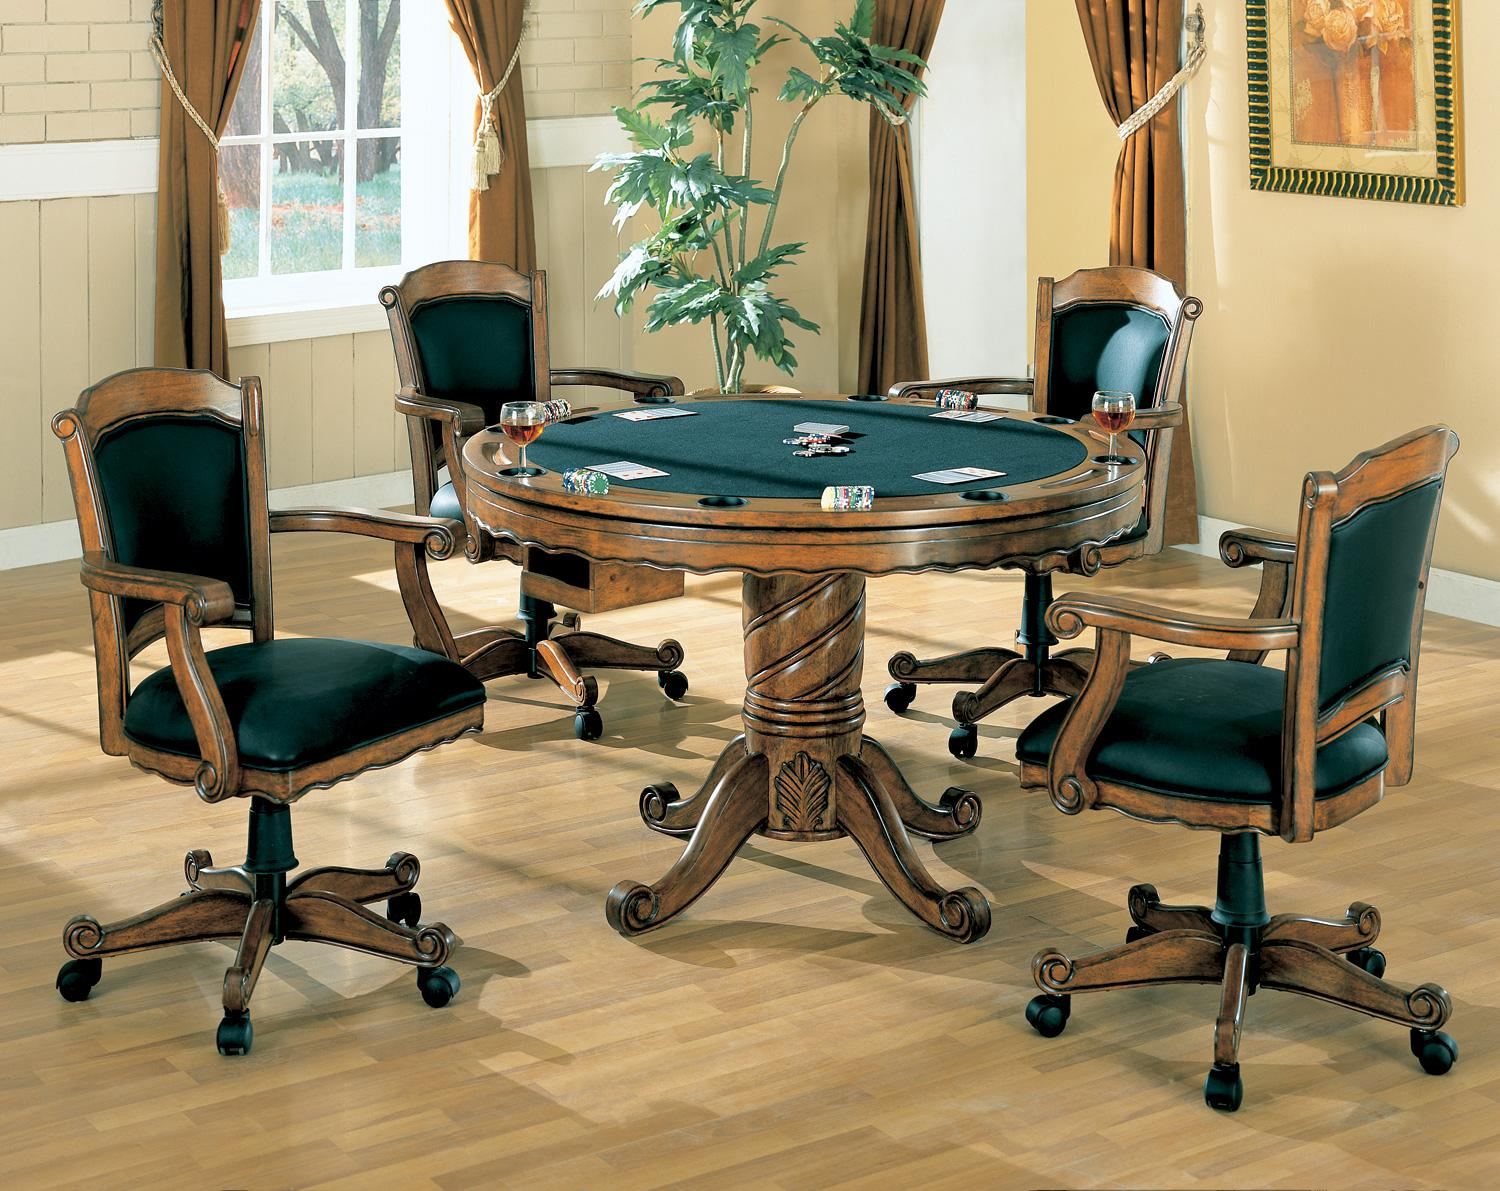 Game Table And Chairs Set Turk 5 Pc 3 In 1 Round Pedestal Game Table Set